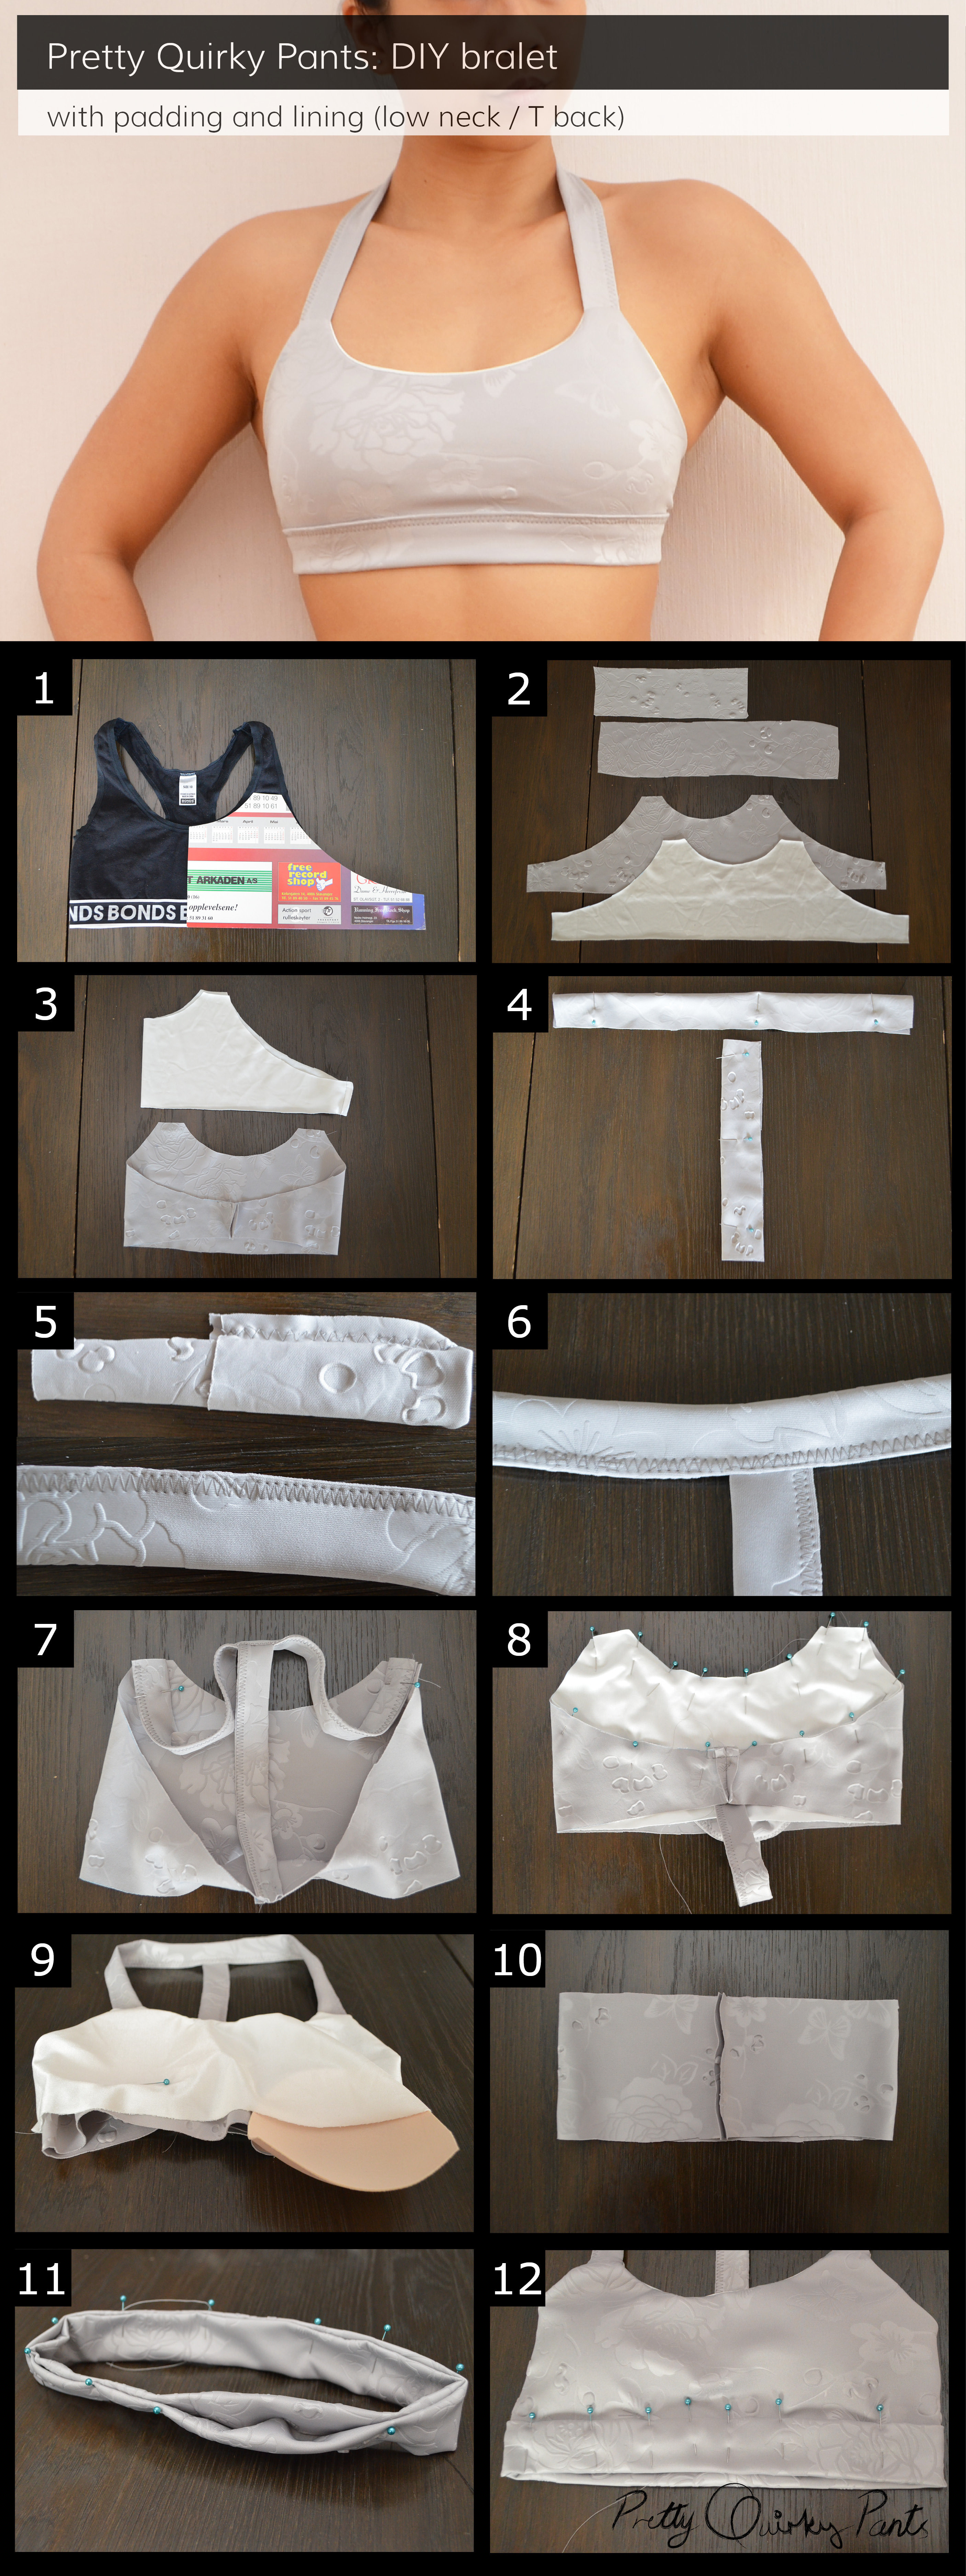 Instructions - lo top t back bralet